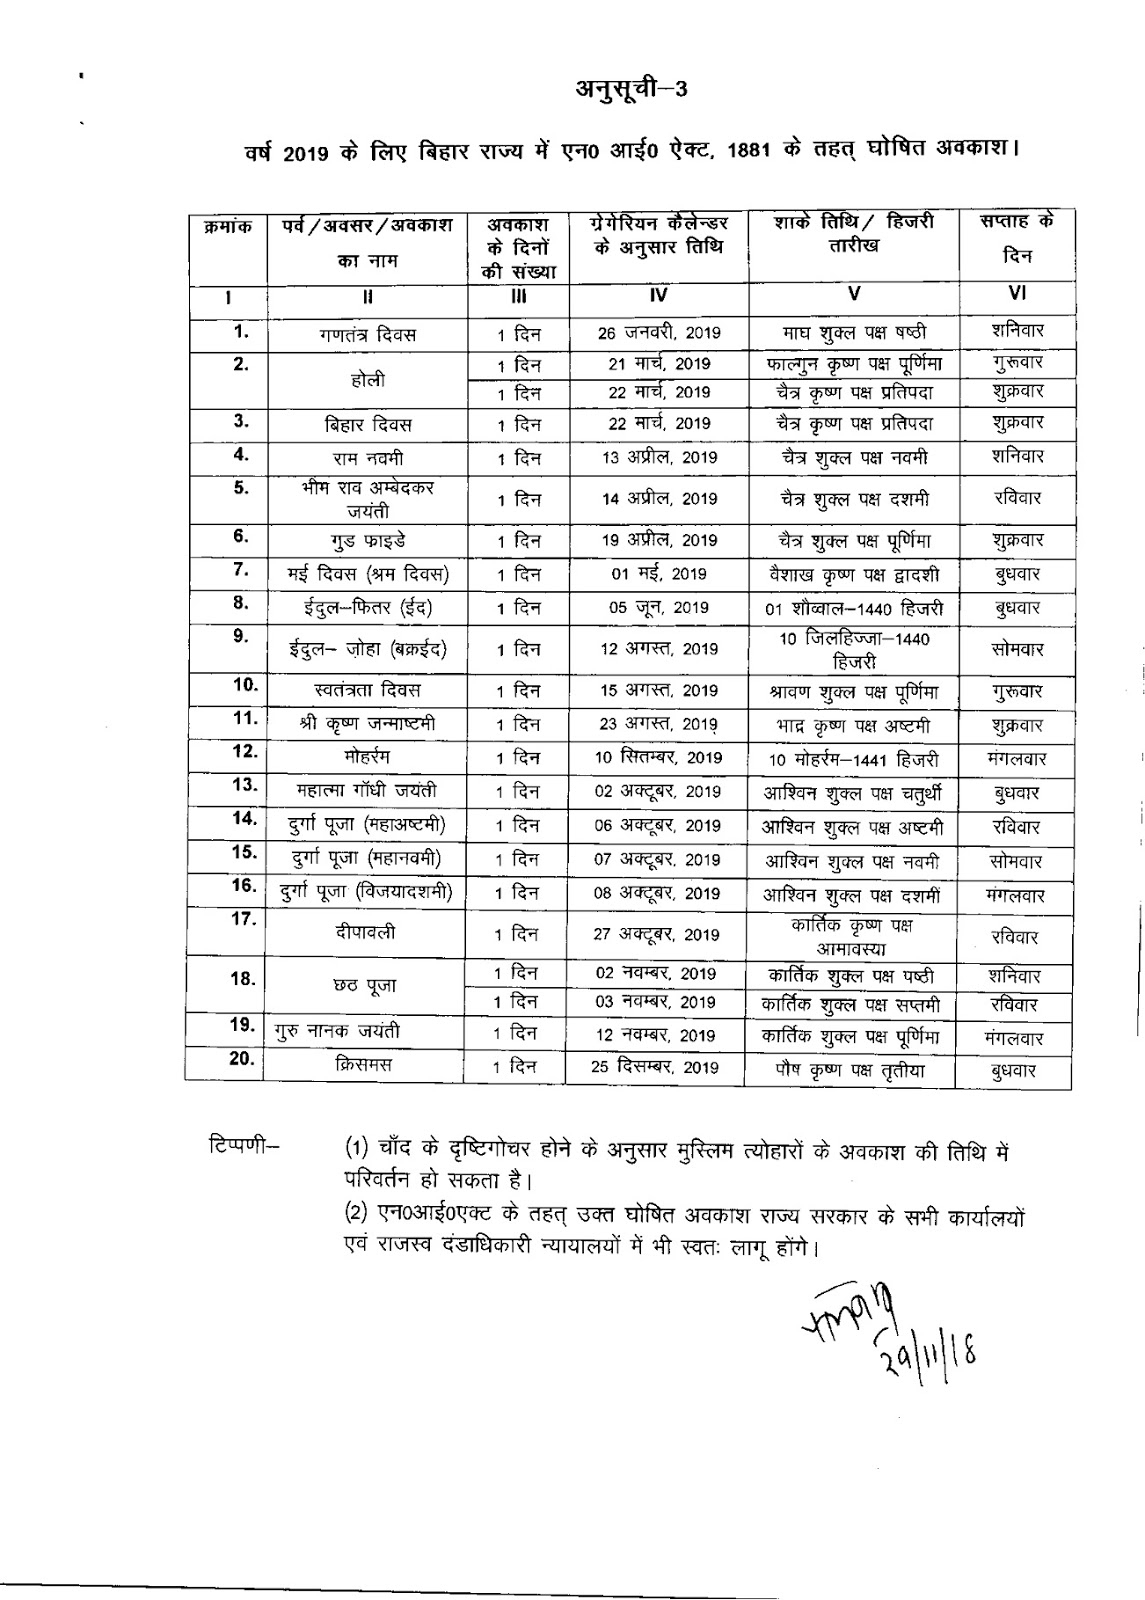 Bihar Government Calendar 2019 within Bihar Government Calendar